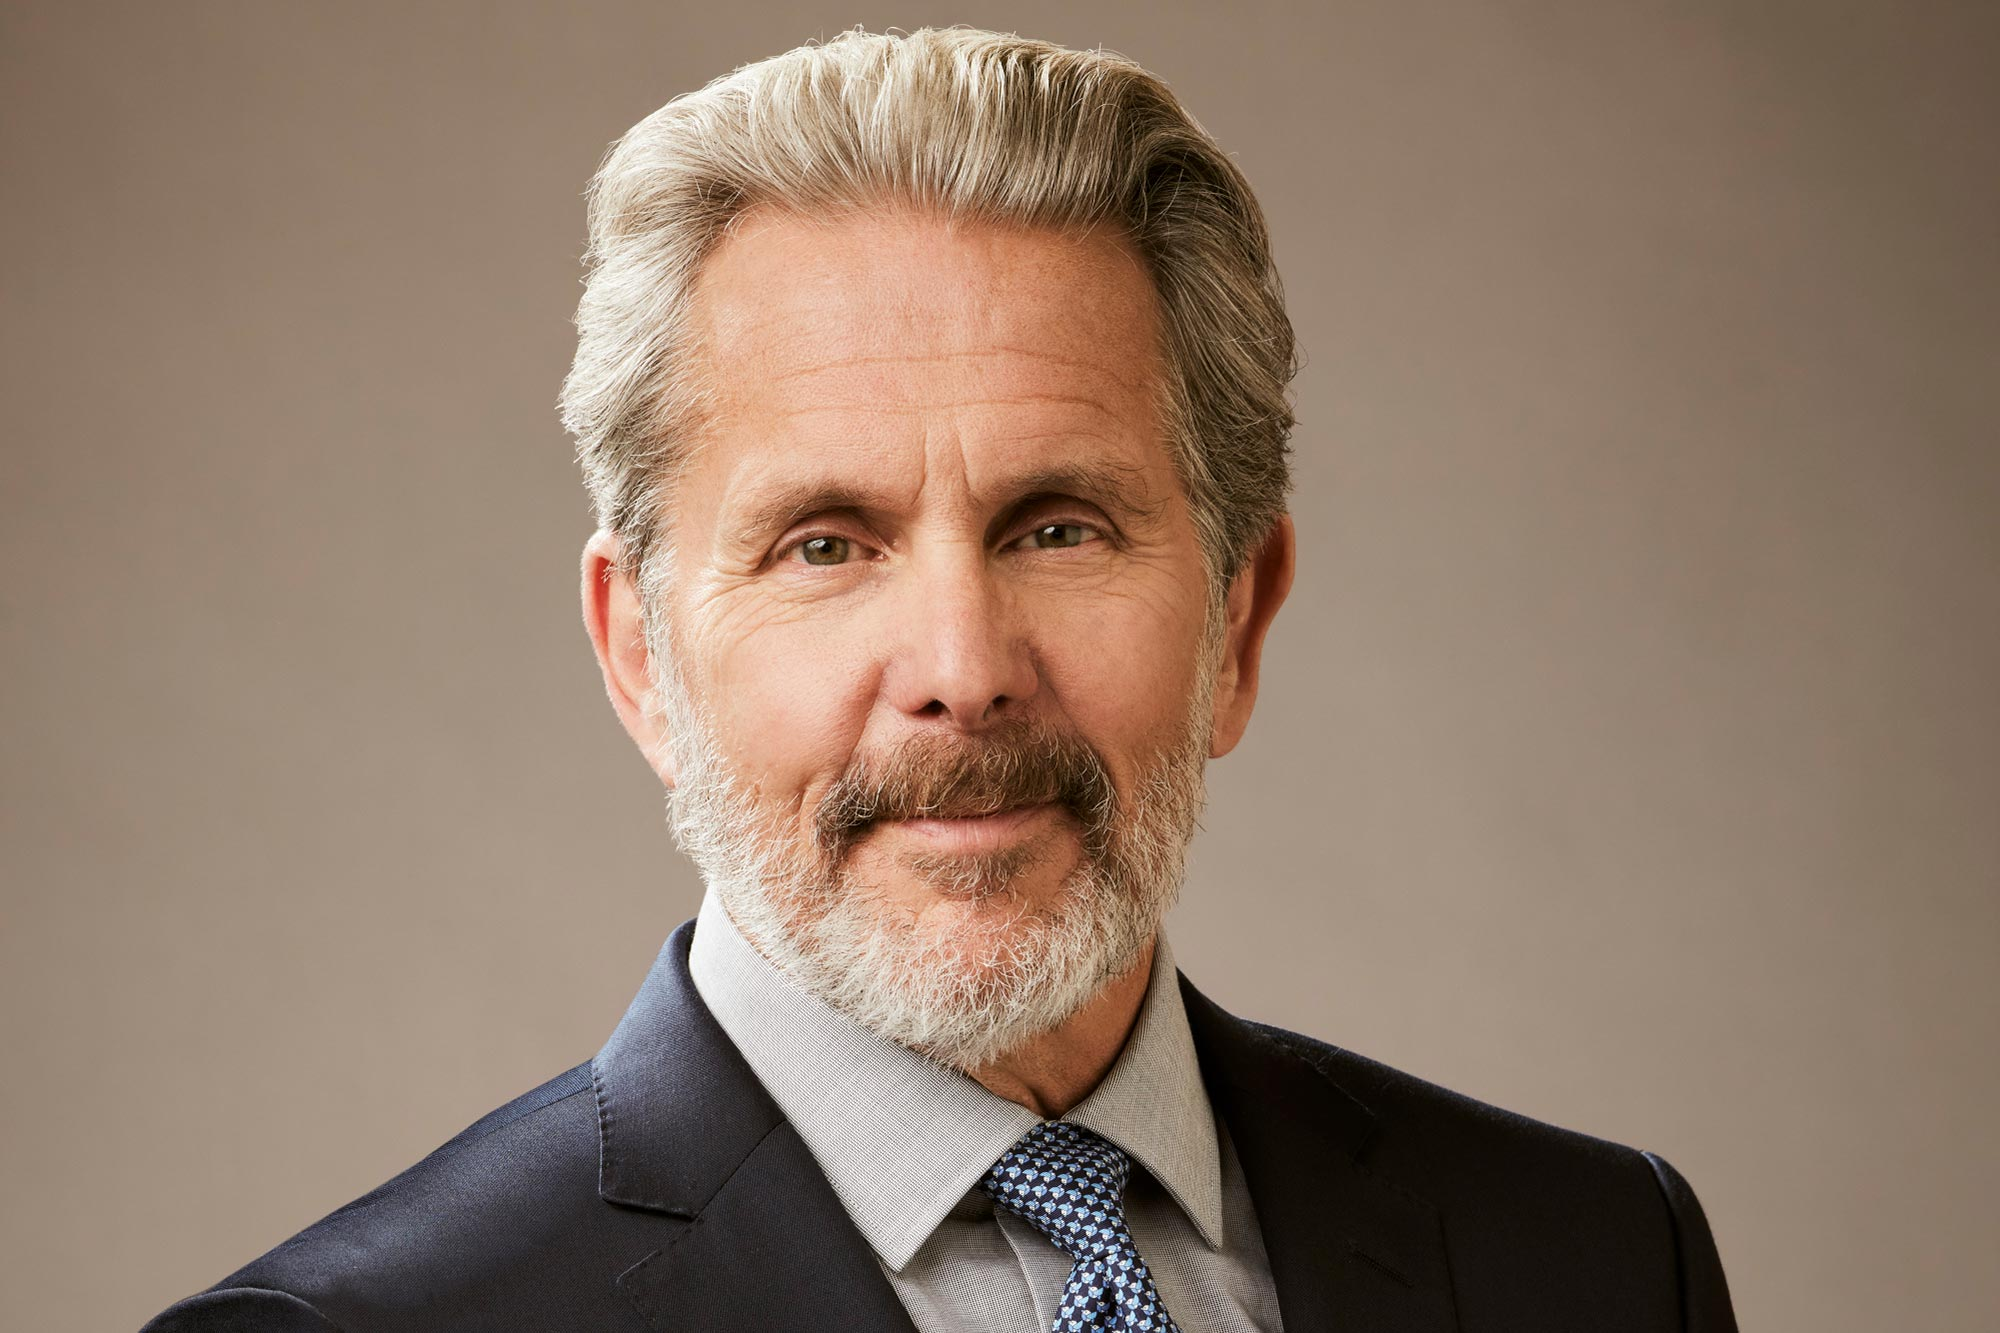 Pop Culture of My Life: NCIS star Gary Cole on Office Space, Pacino, and why puzzles keep him sane